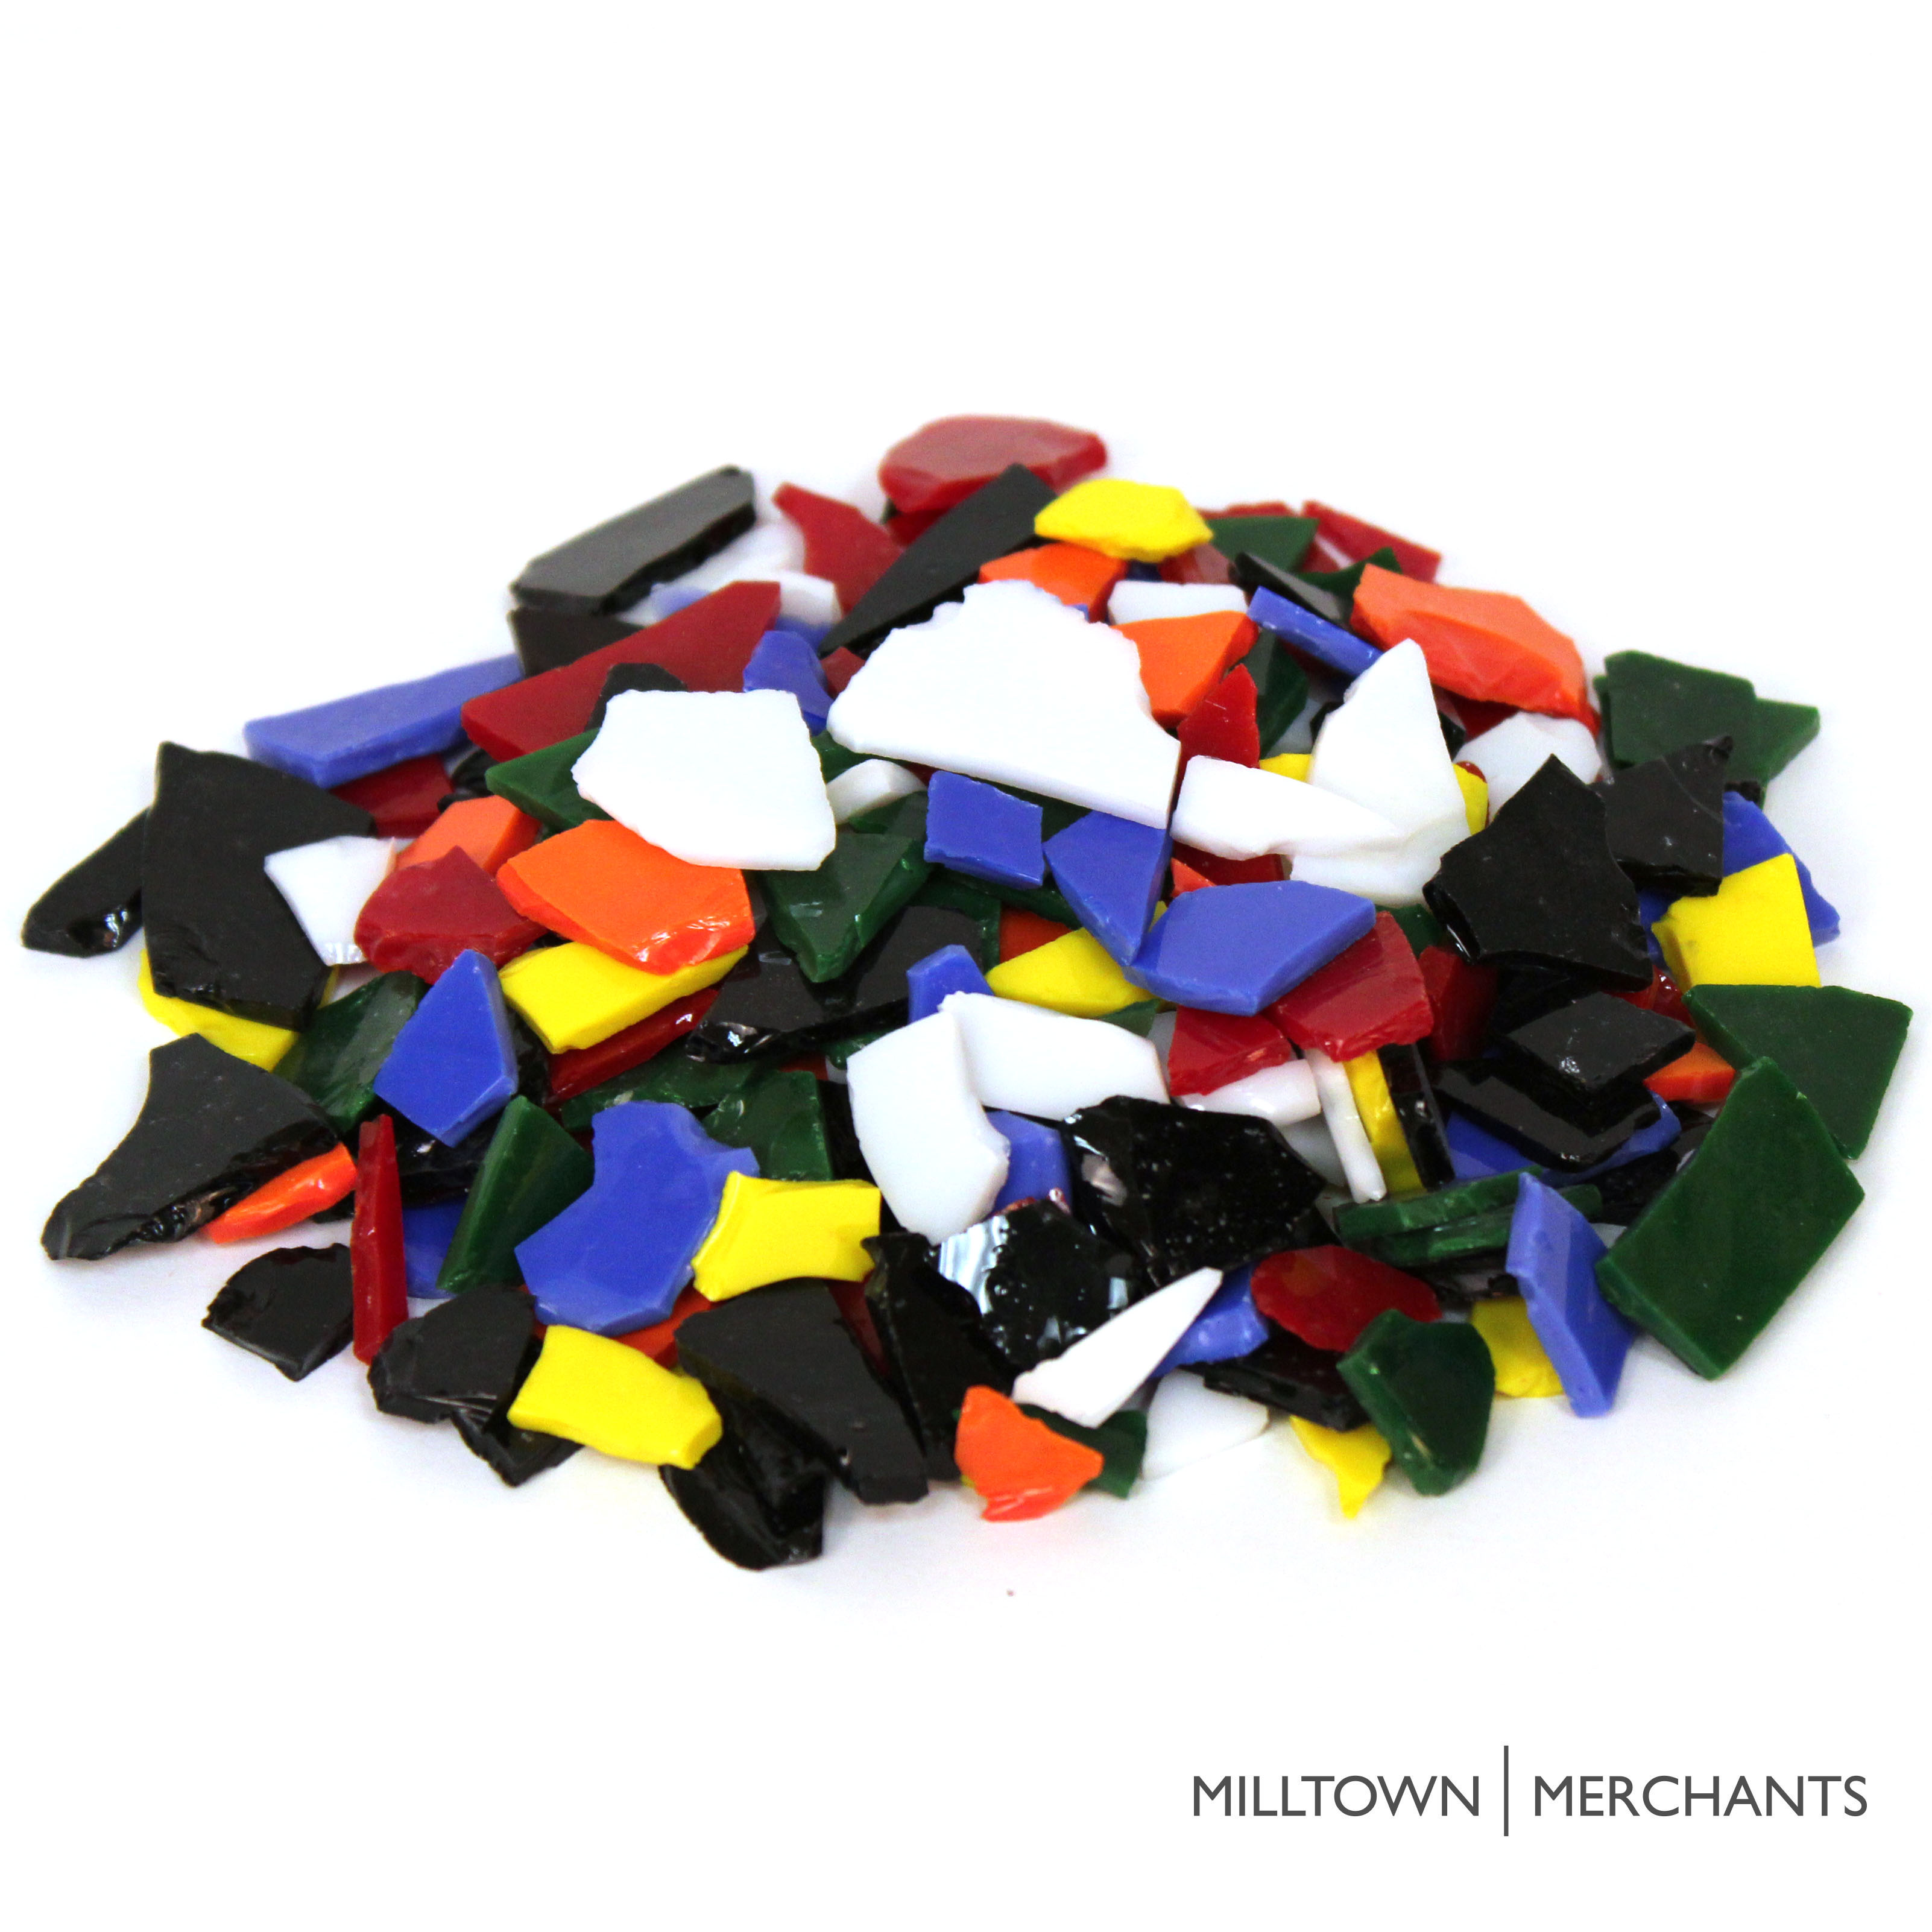 Milltown Merchants Stained Glass Pieces - Opaque and Transparent Stained Glass Cobbles - Broken Glass Chips for Stepping Stones and Crafts - Bright Color Glass Coblets